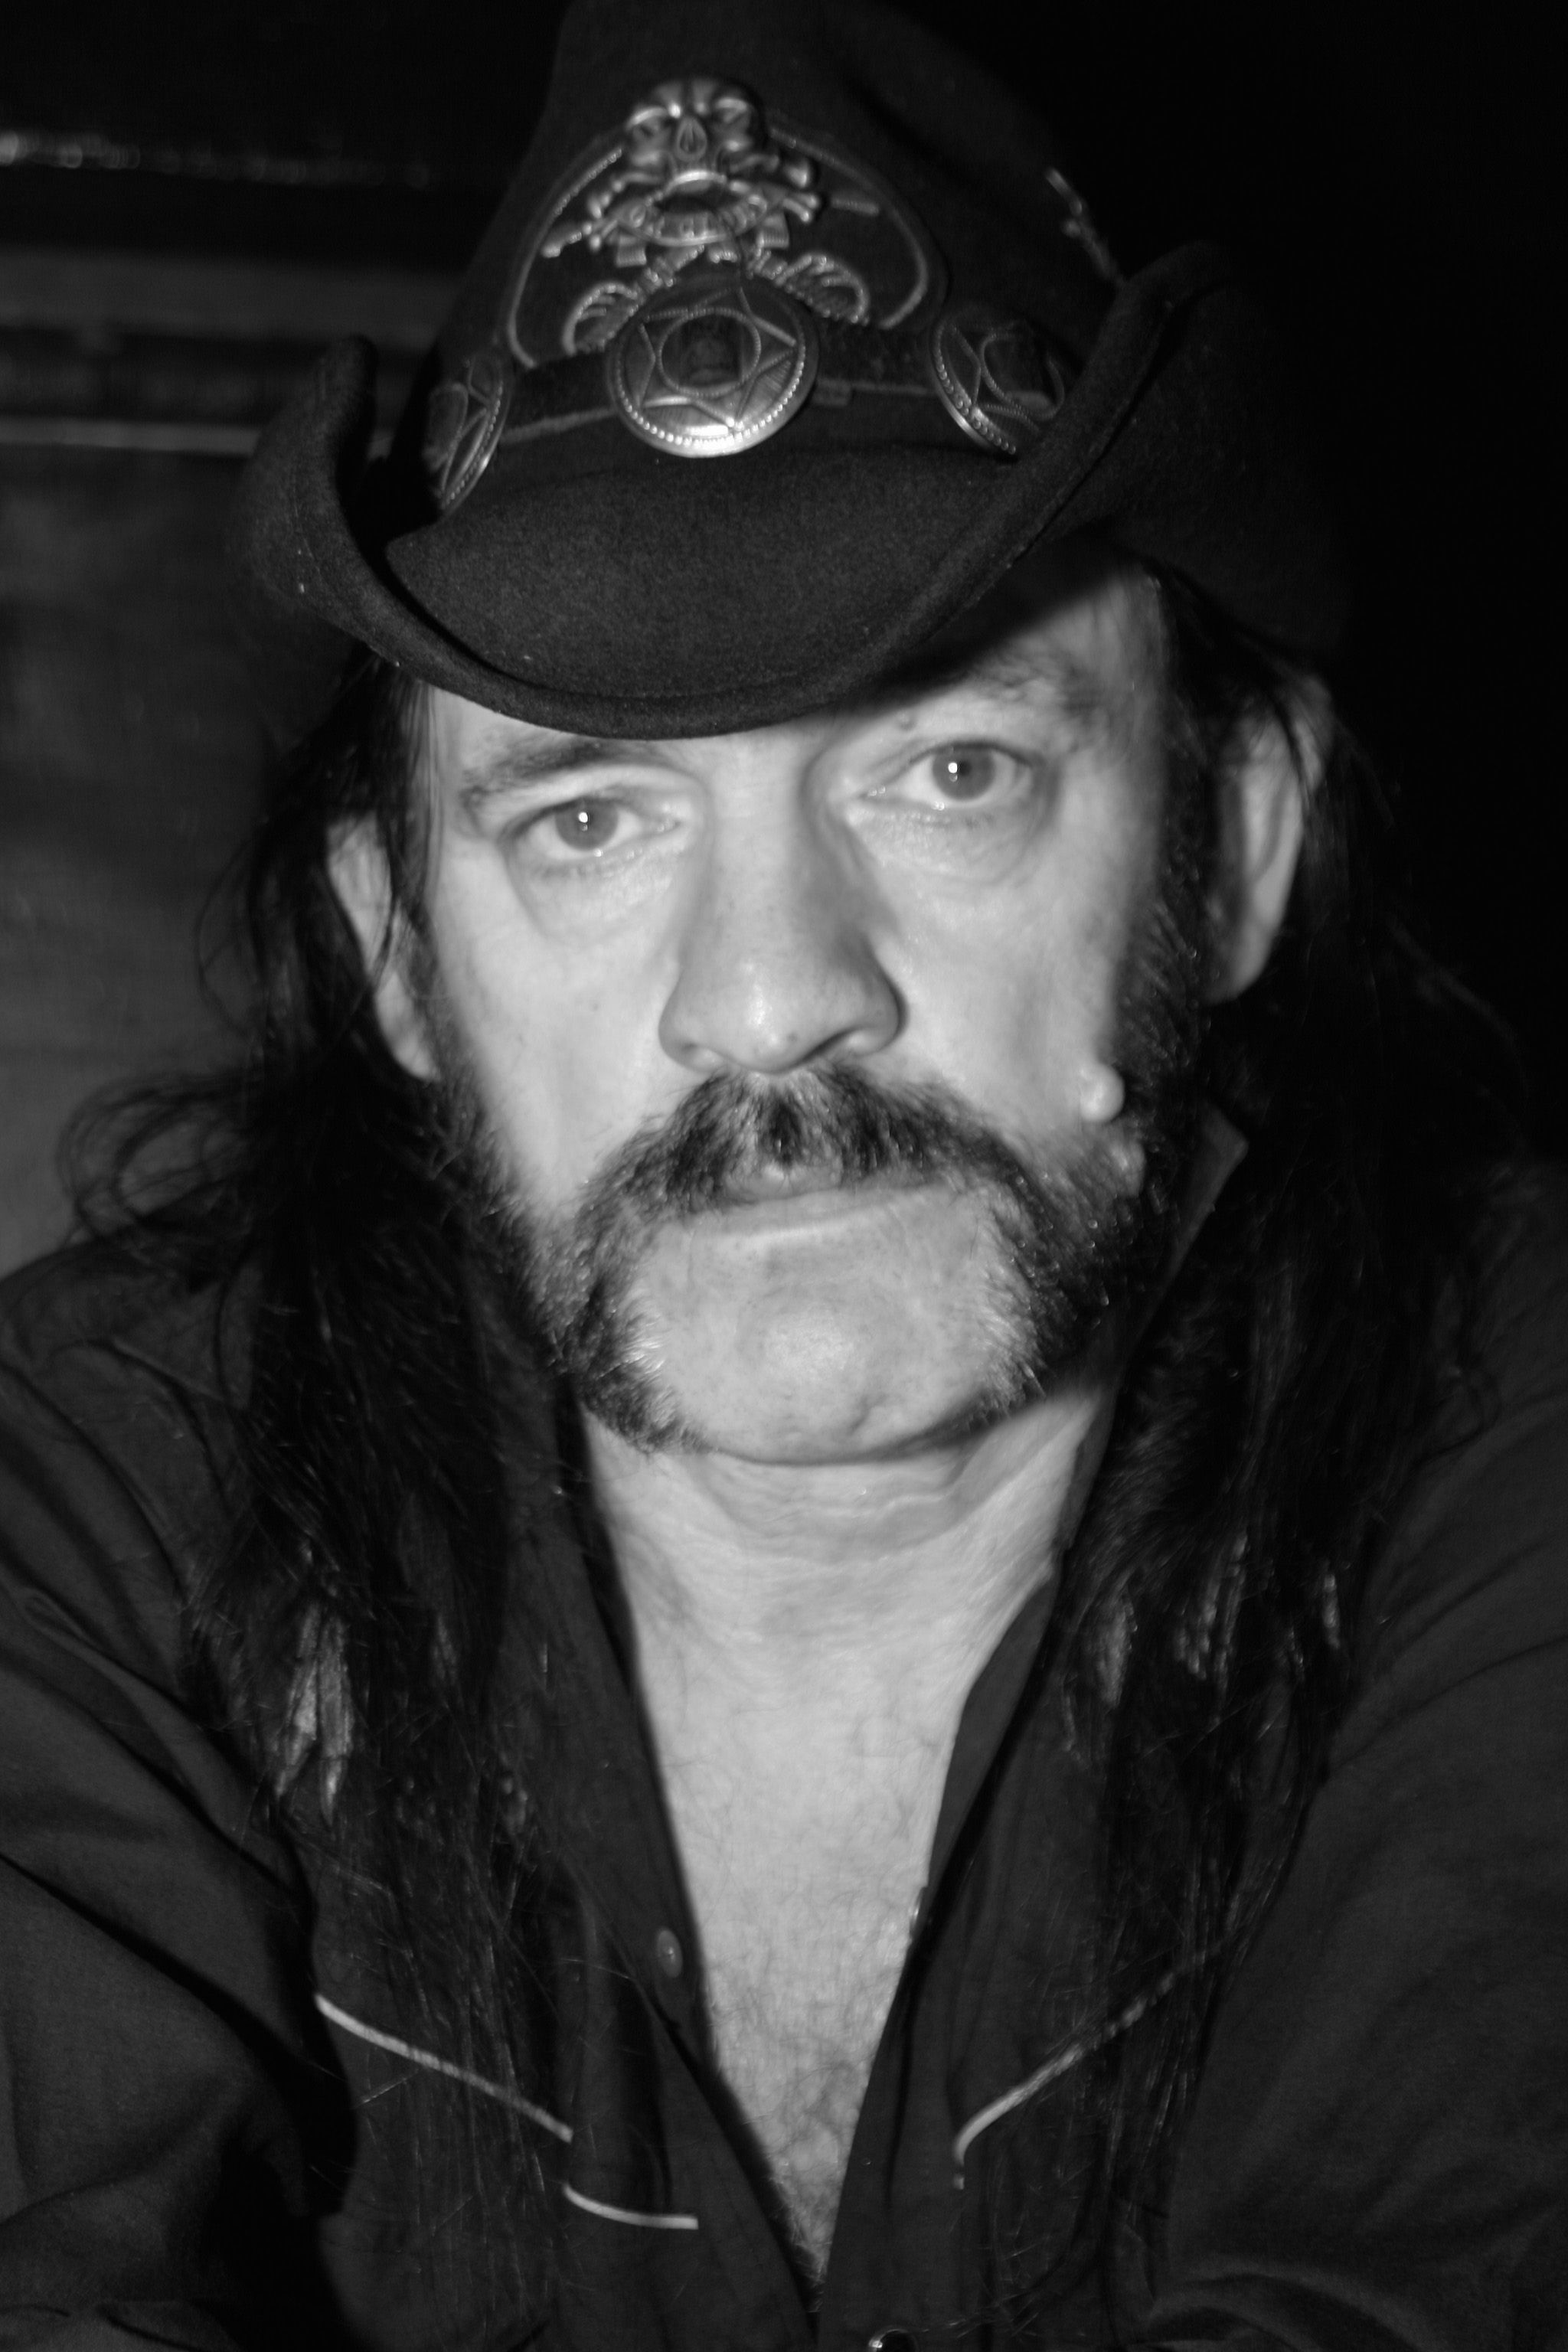 Lemmy musicians andy gotts mbe andy gotts pinterest lemmy kilmister of motorhead interview by steve olson and corey parks photo by ted terrebonne hexwebz Choice Image